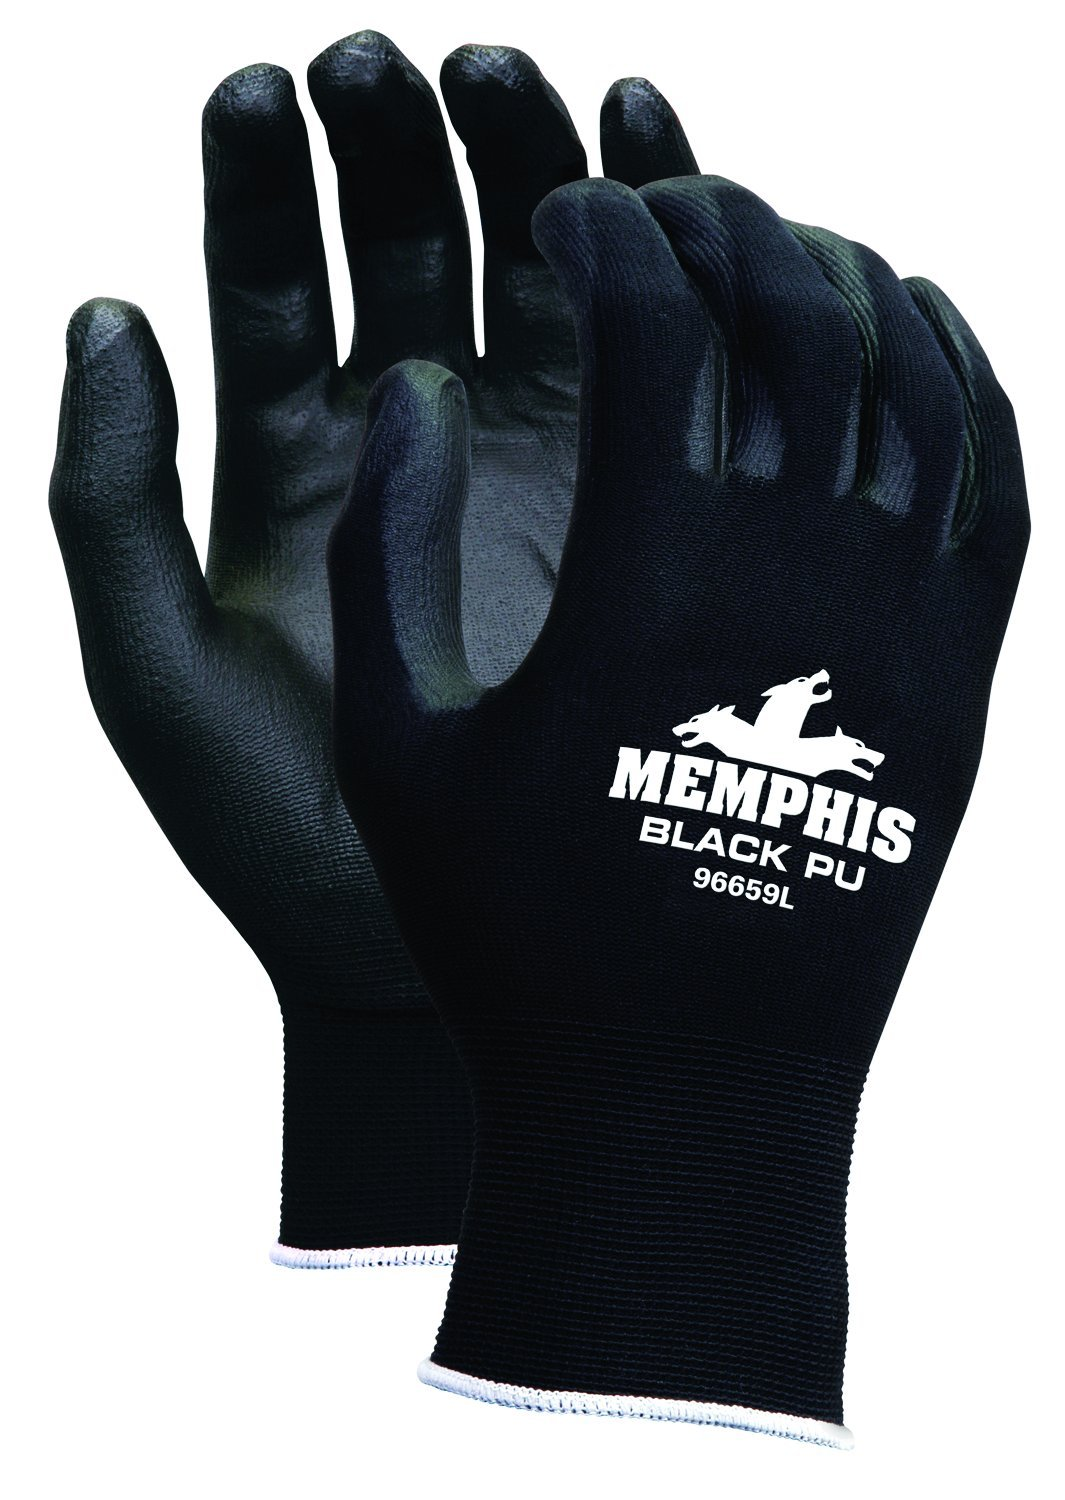 MCR Safety 9669L Nylon Knitted Shell MCR Safetys with Black PU Dipped Palm and Fingers, Black, Large, 1-Pair